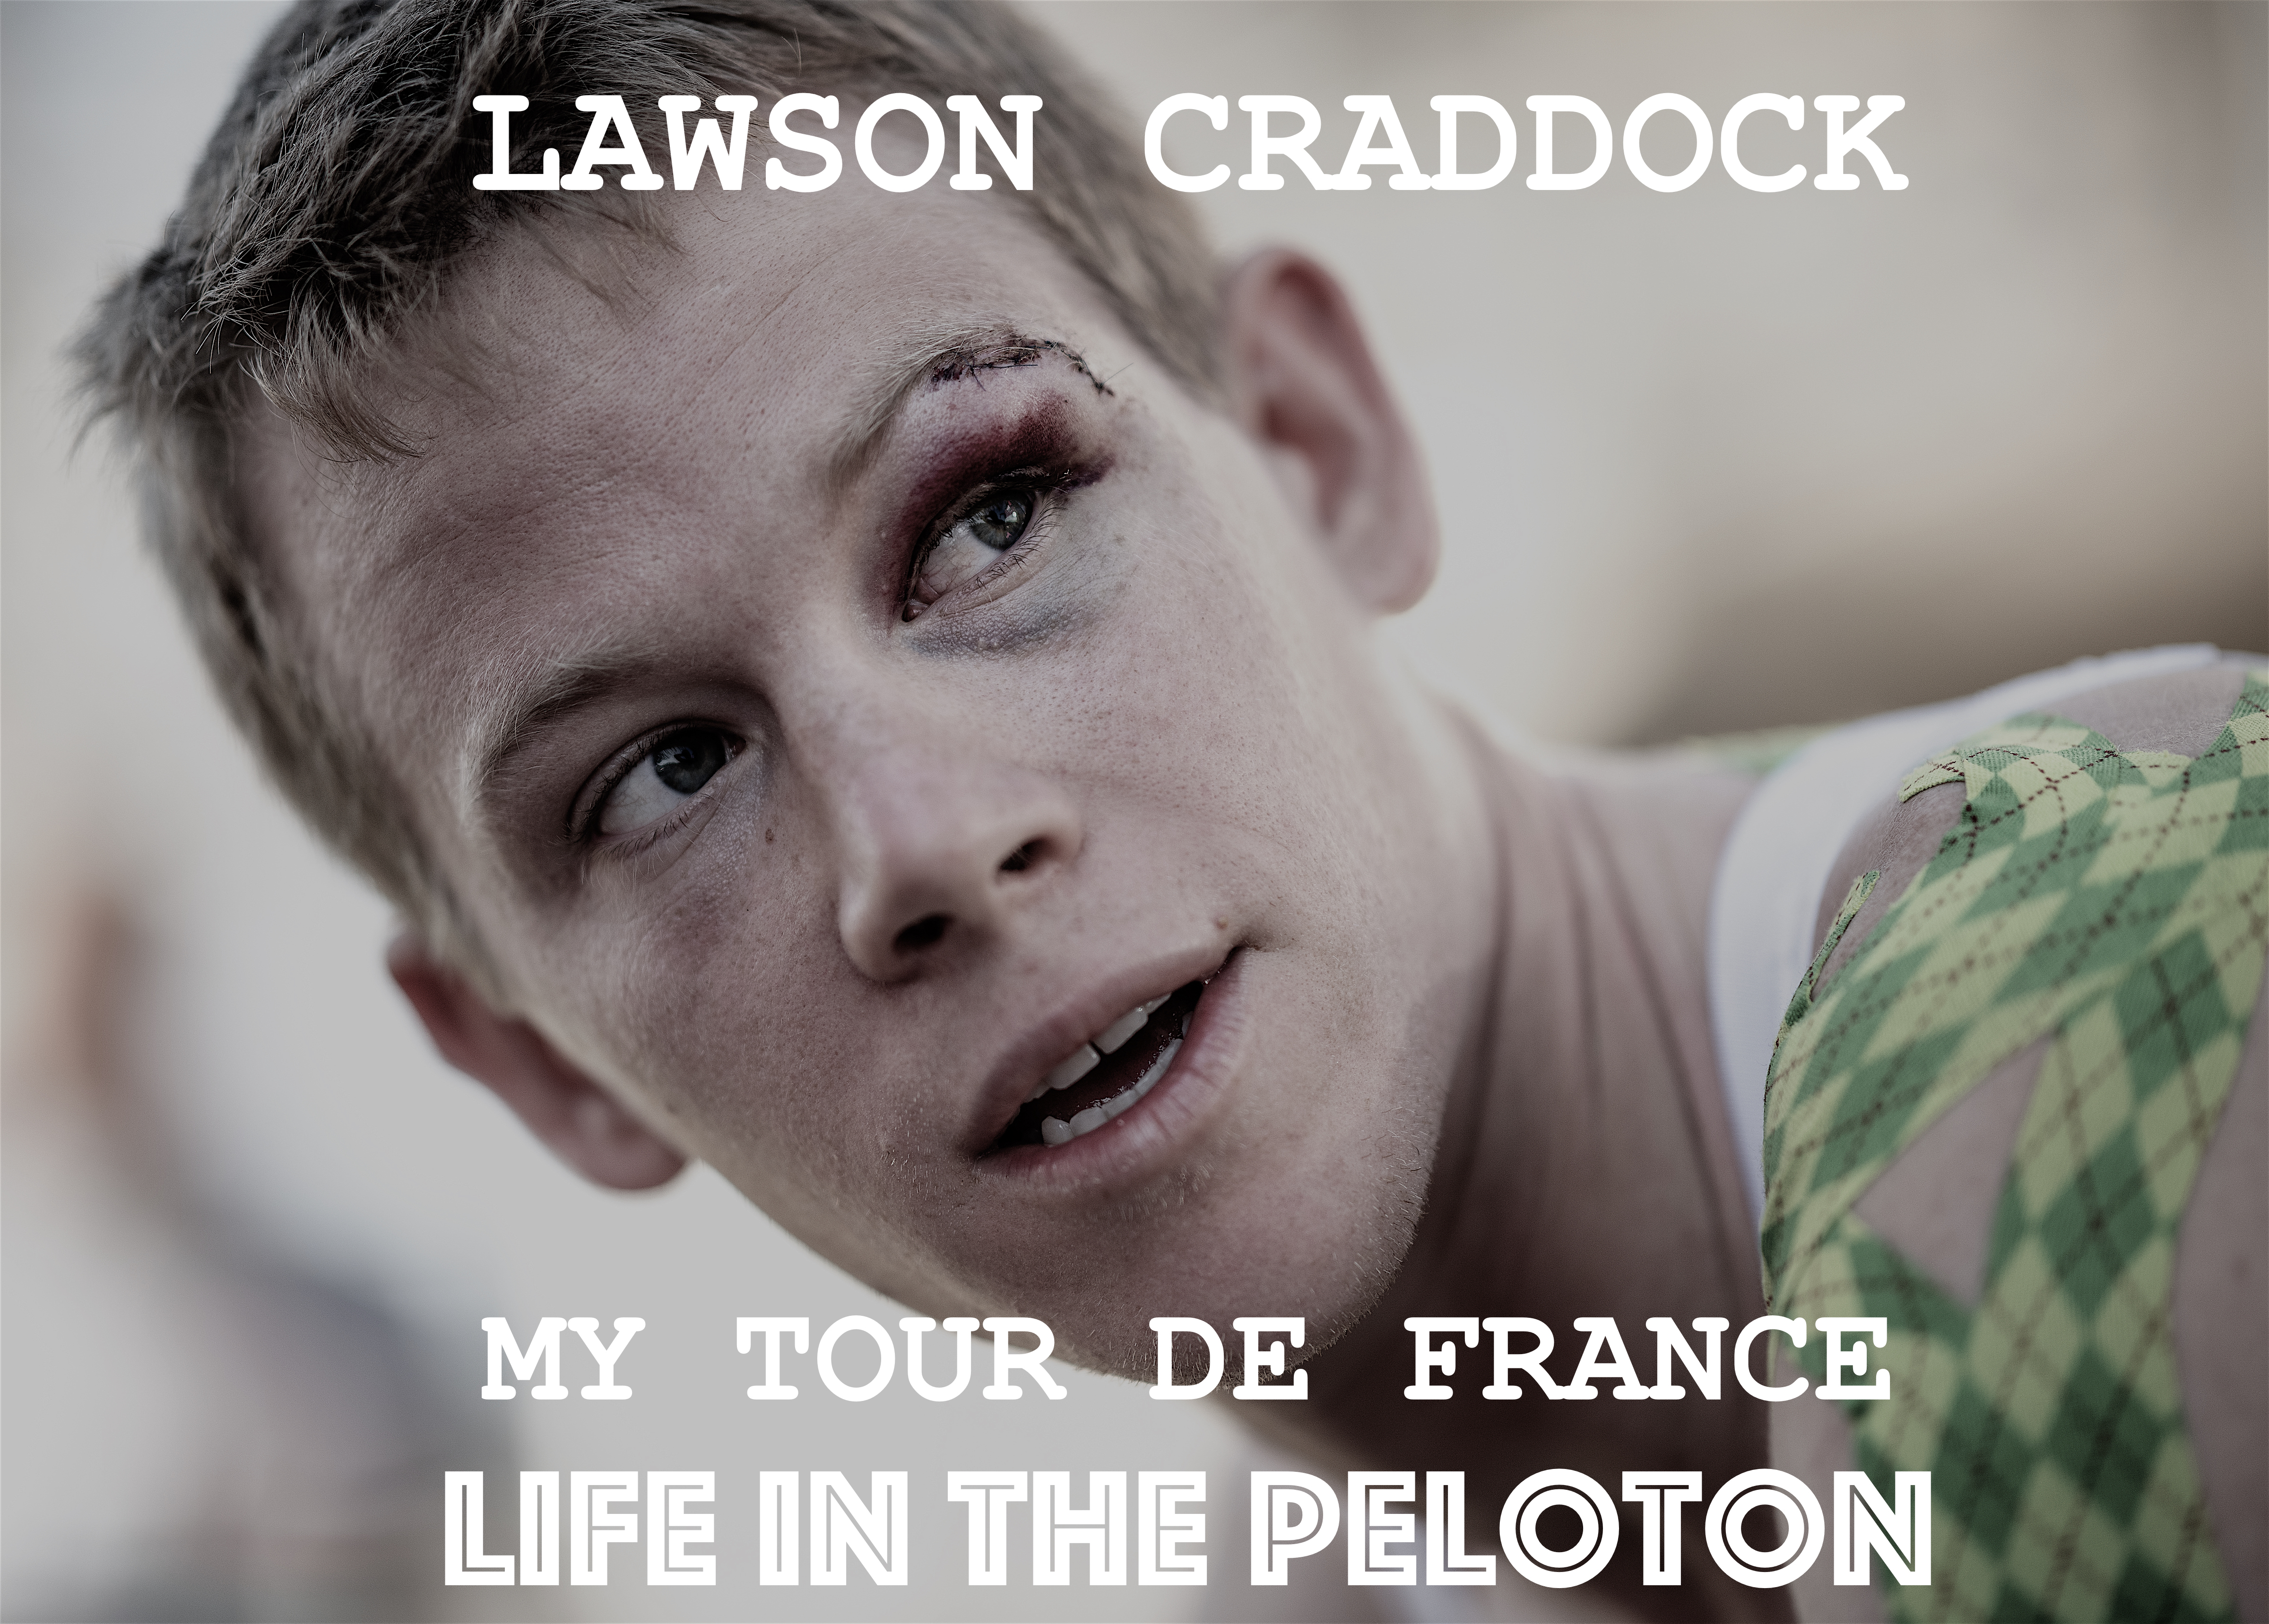 Lawson Craddock – My Tour De France